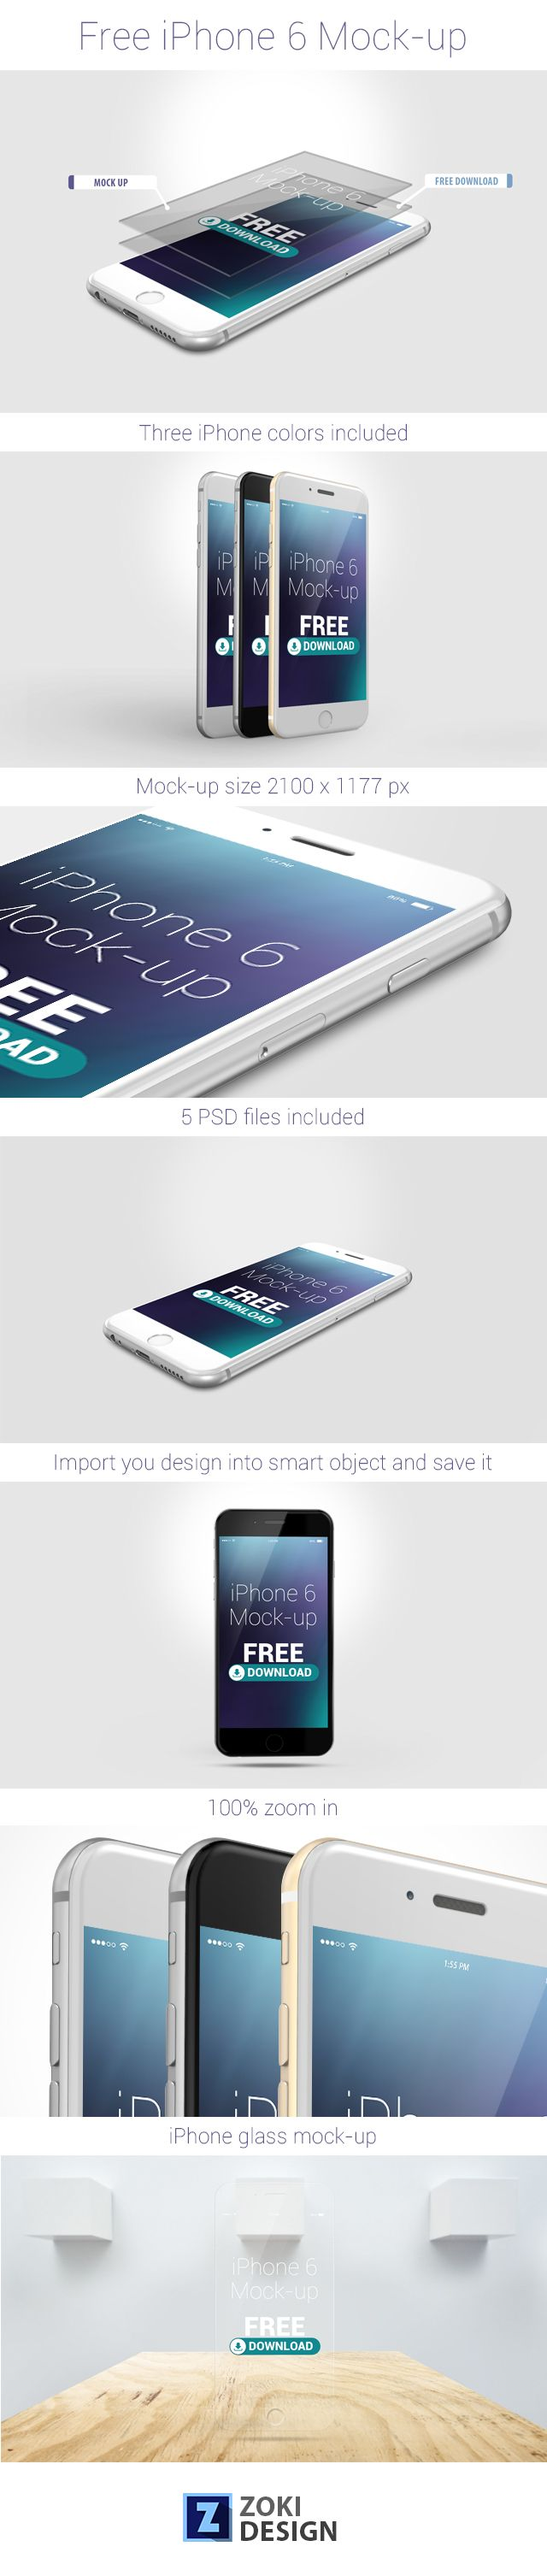 398 best mockups images on pinterest miniatures mockup and model